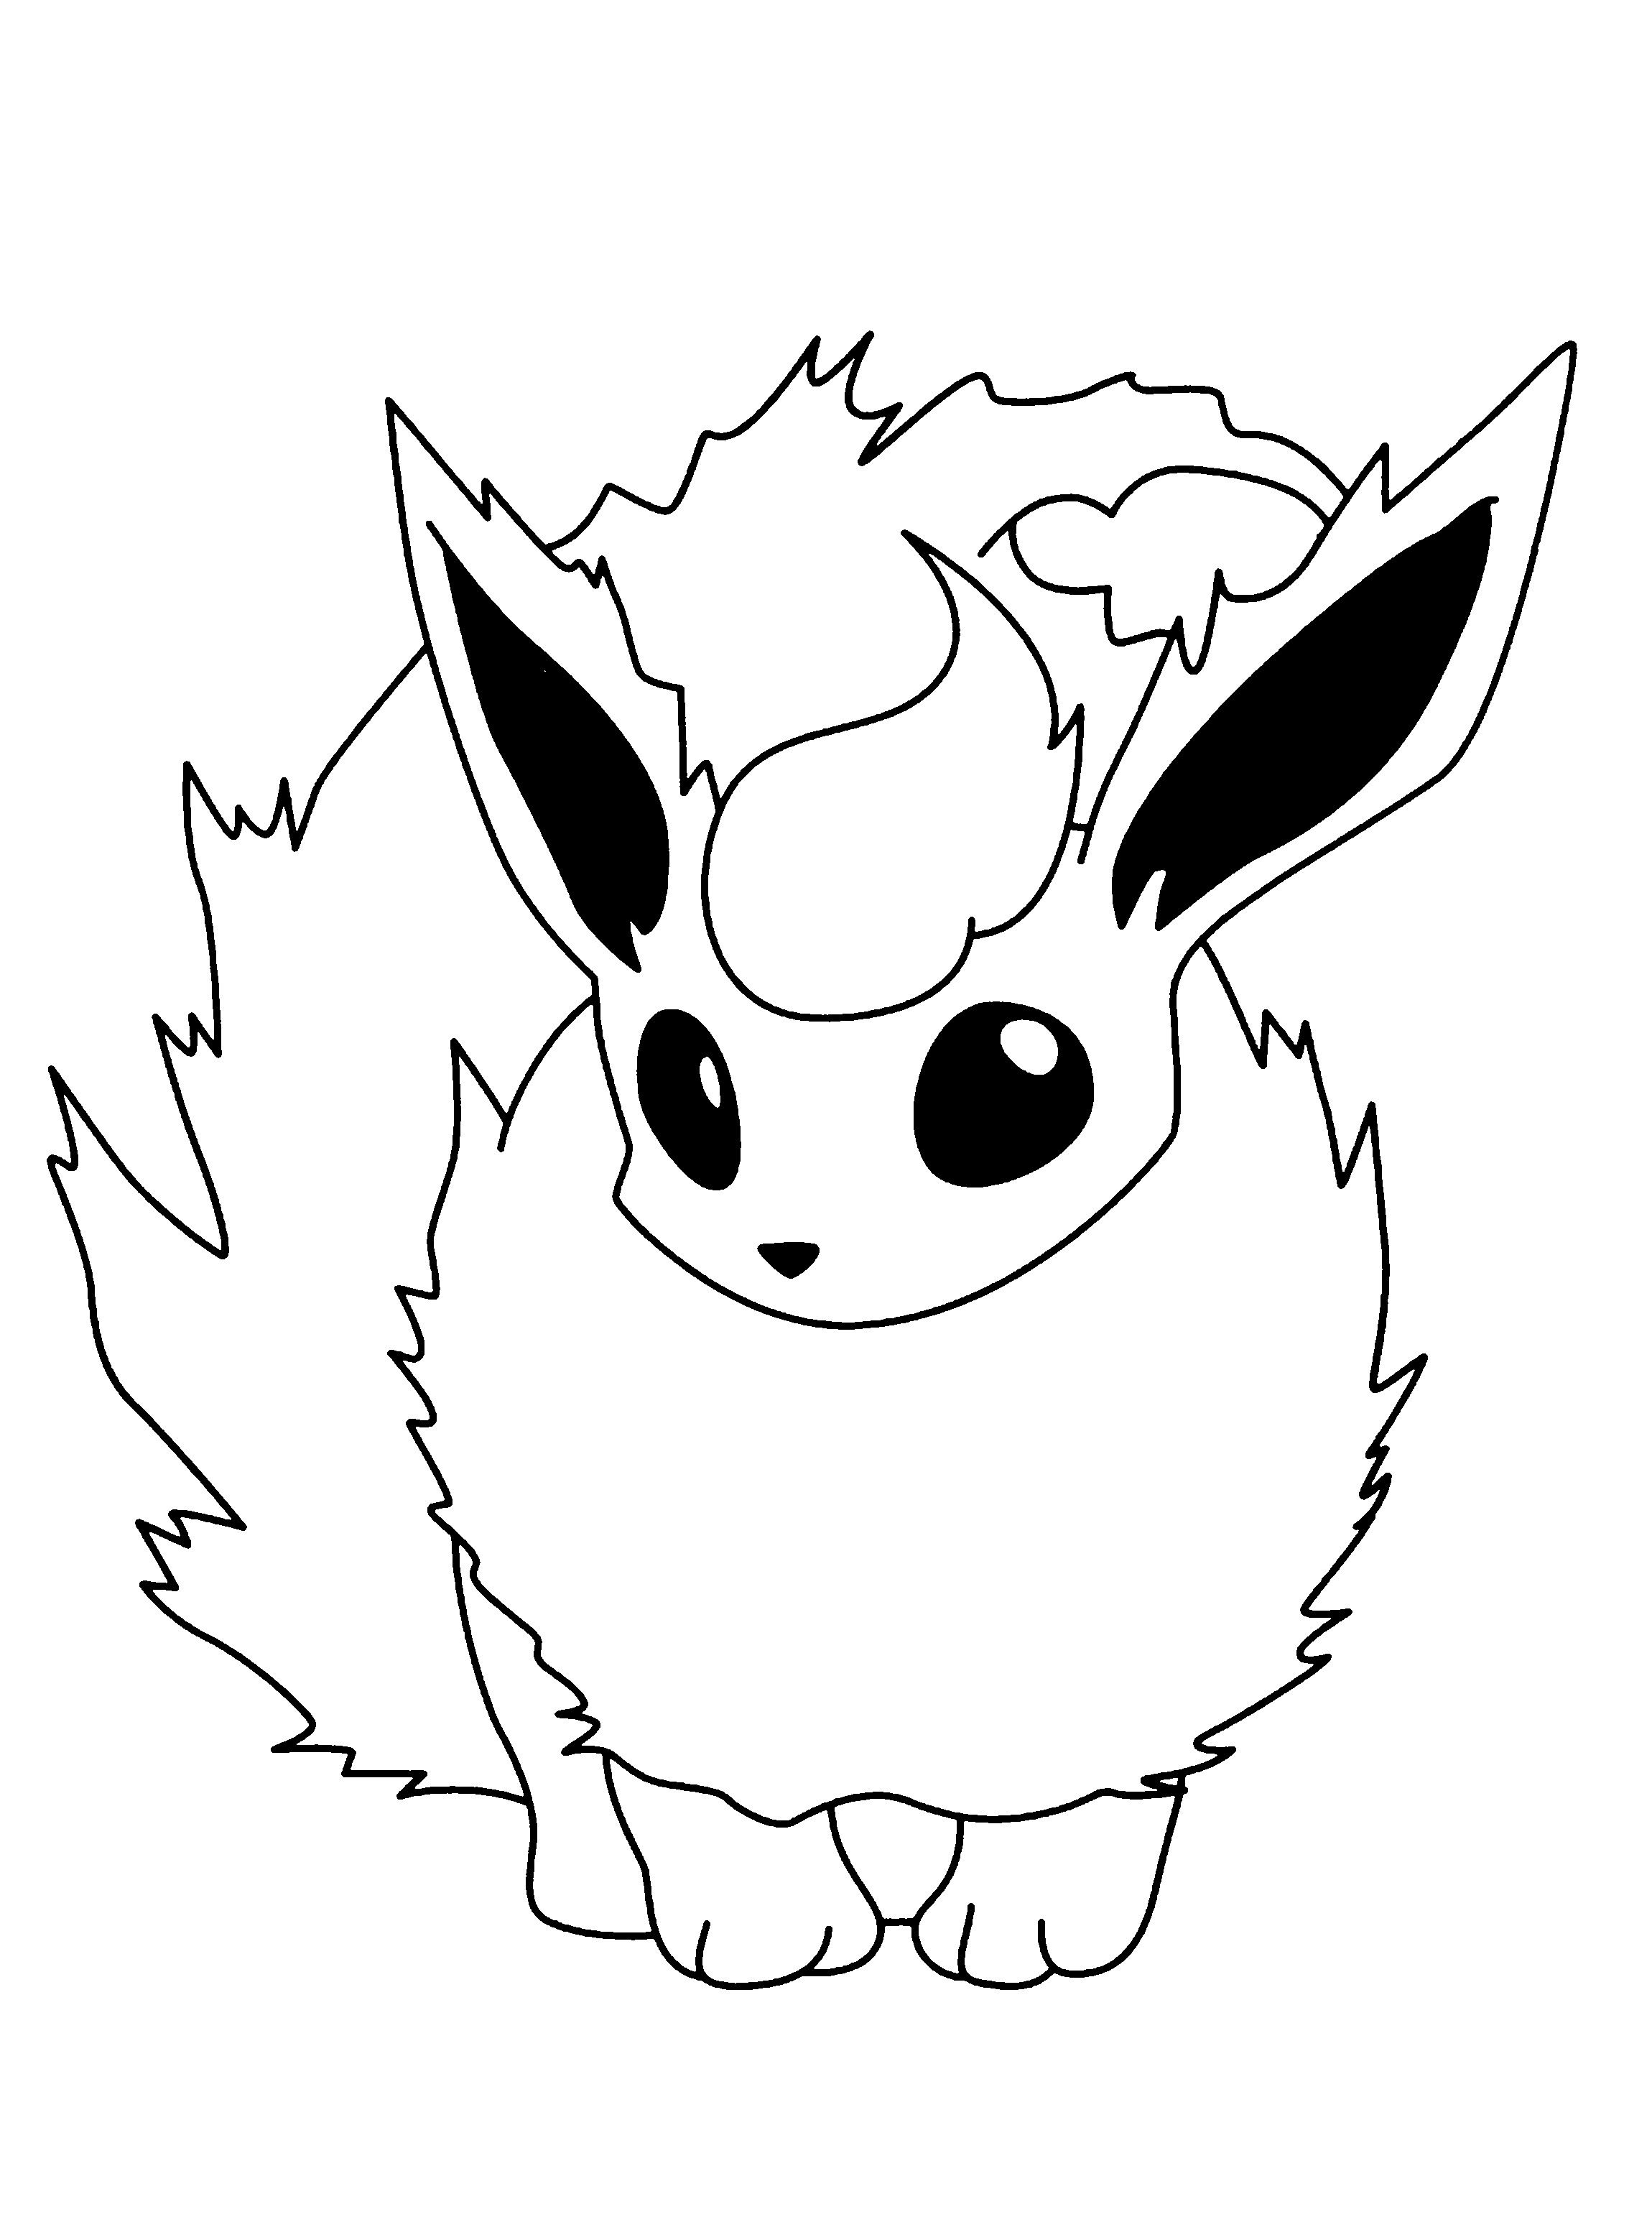 pokemon coloring sheets printable pokemon coloring pages download pokemon images and print coloring printable sheets pokemon